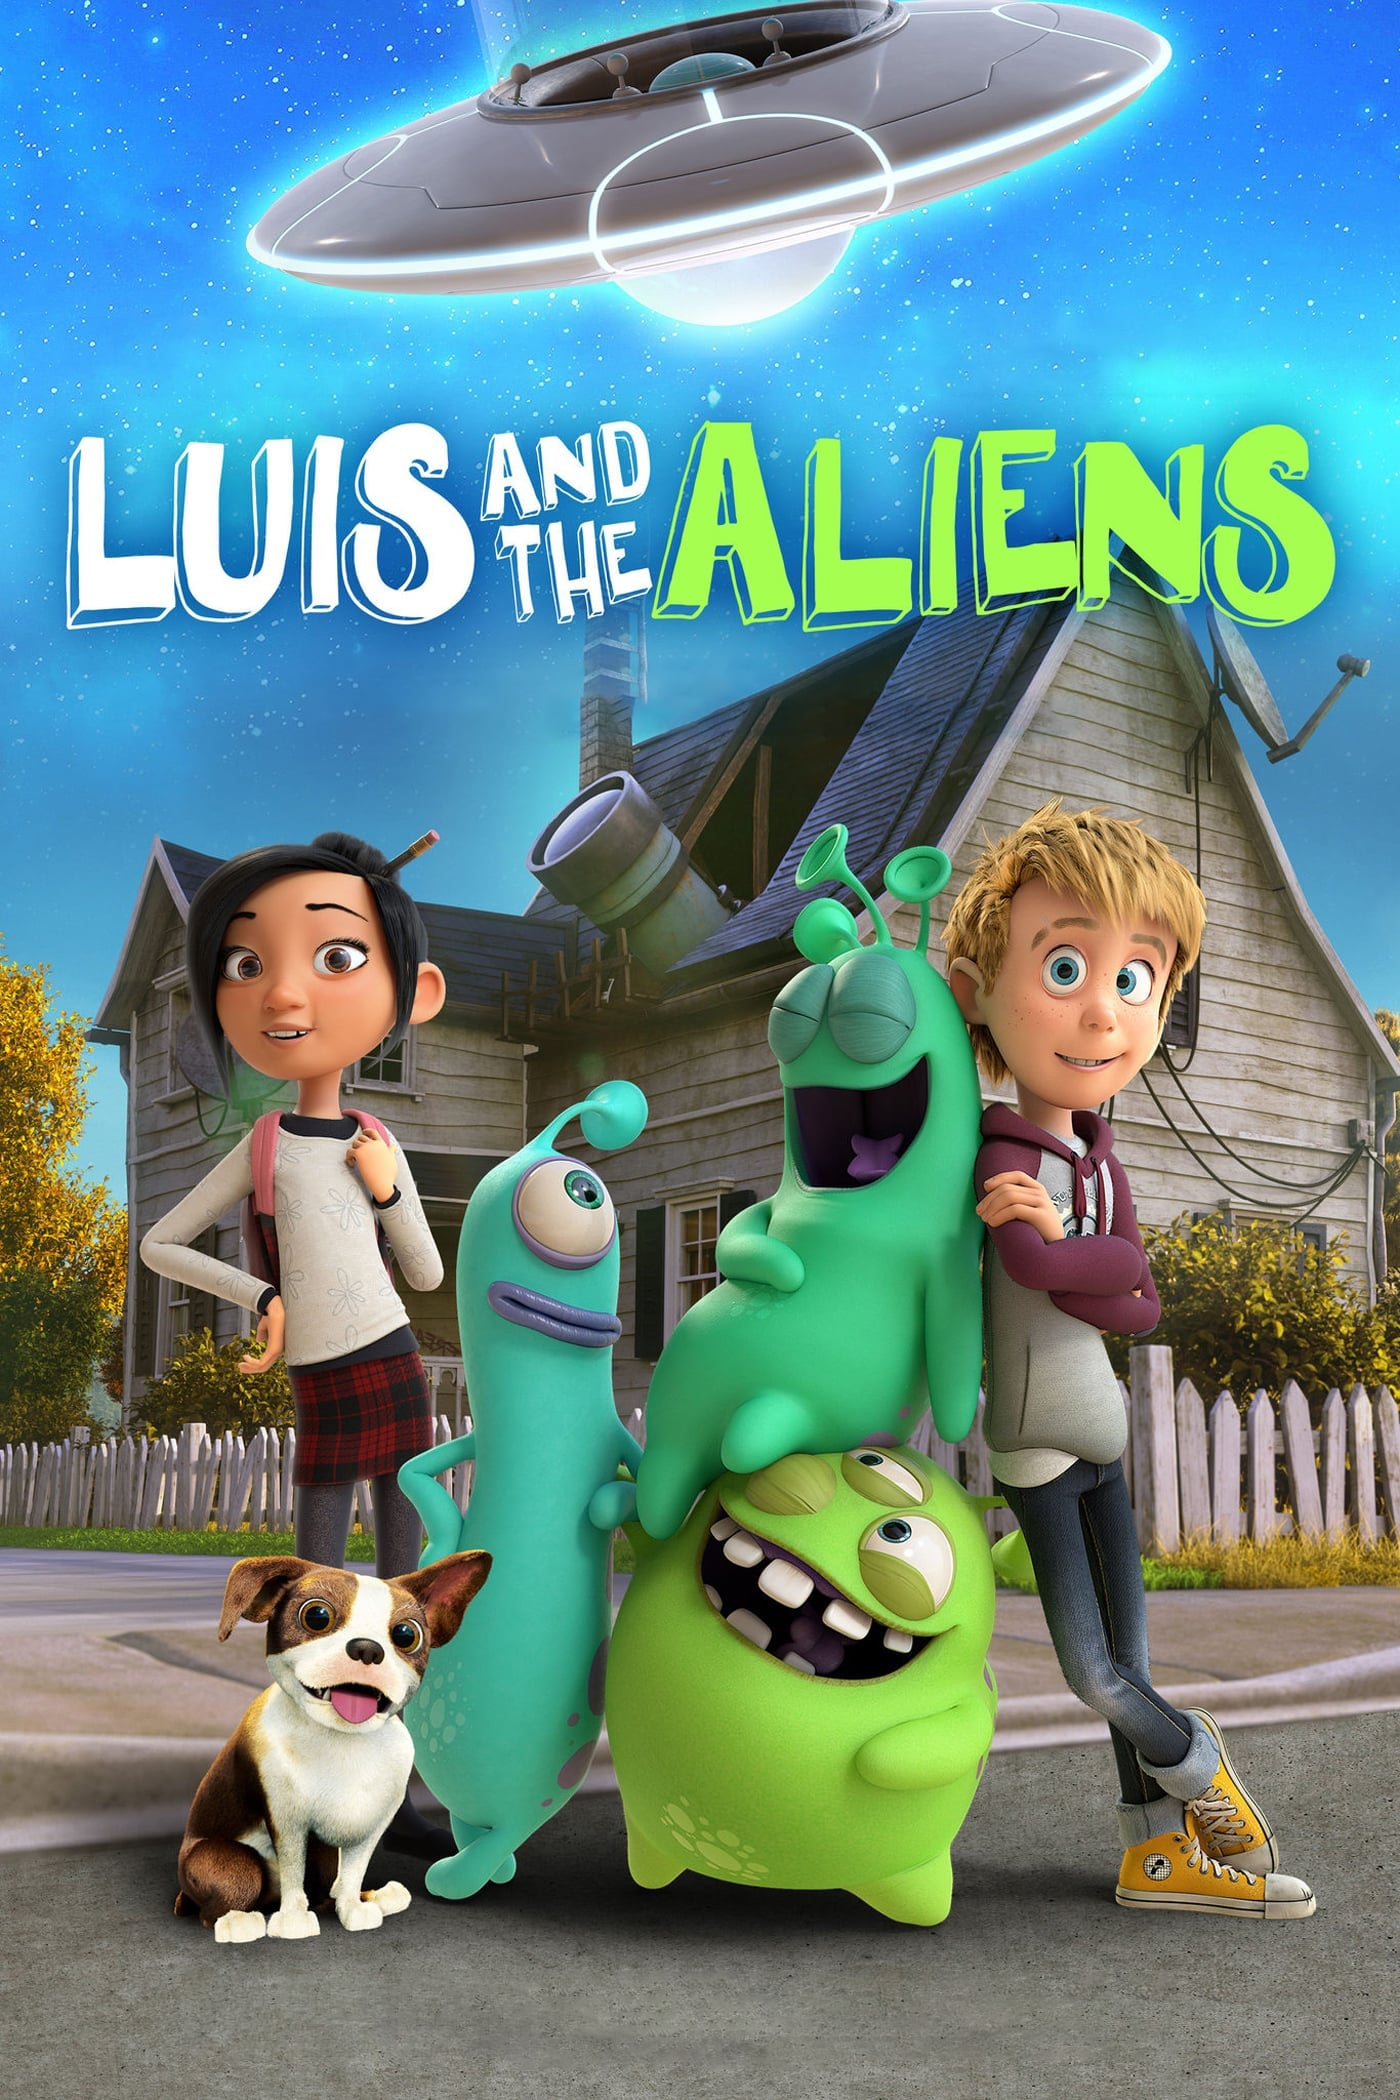 Léo Et Les Extra-Terrestres - Luis And The Aliens - 2018Film streaming gratuit (free)